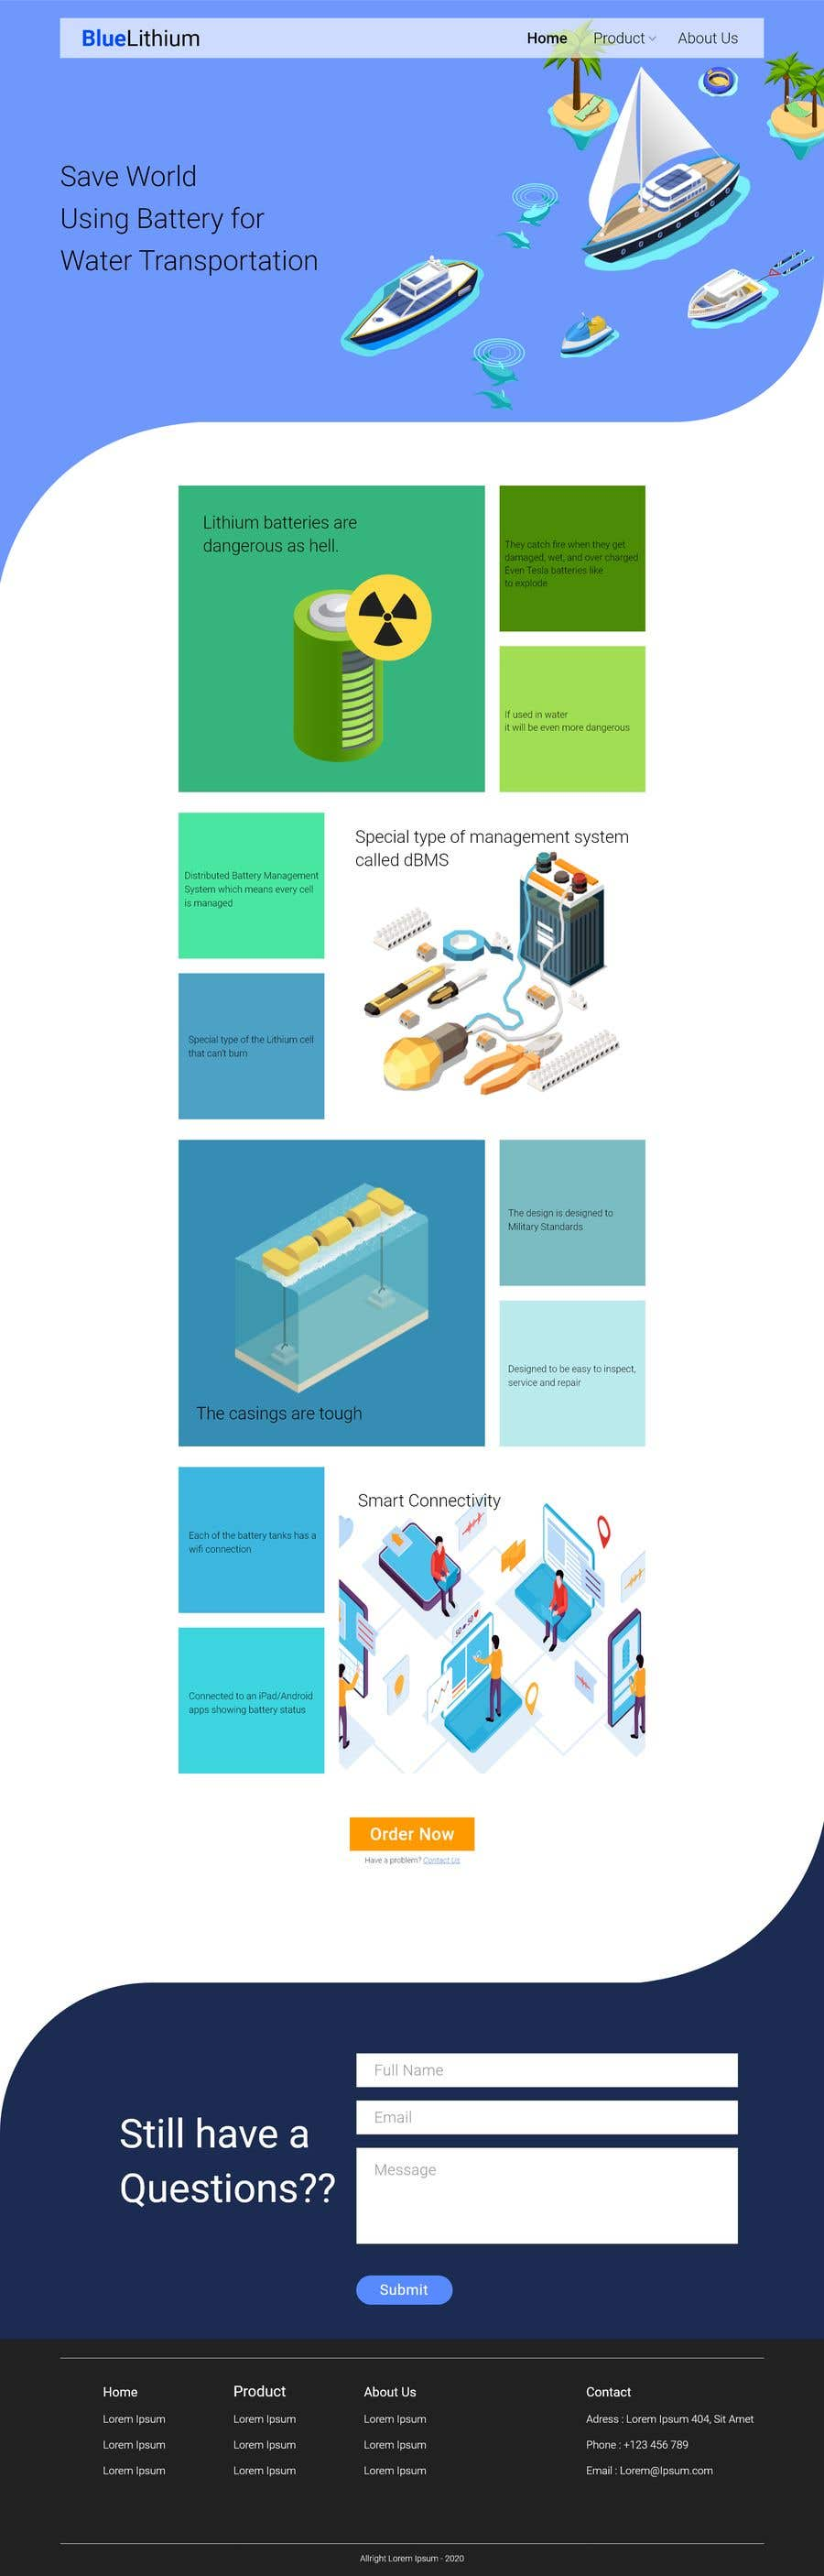 Bài tham dự cuộc thi #                                        39                                      cho                                         Explainer Website for Marine Battery startup product